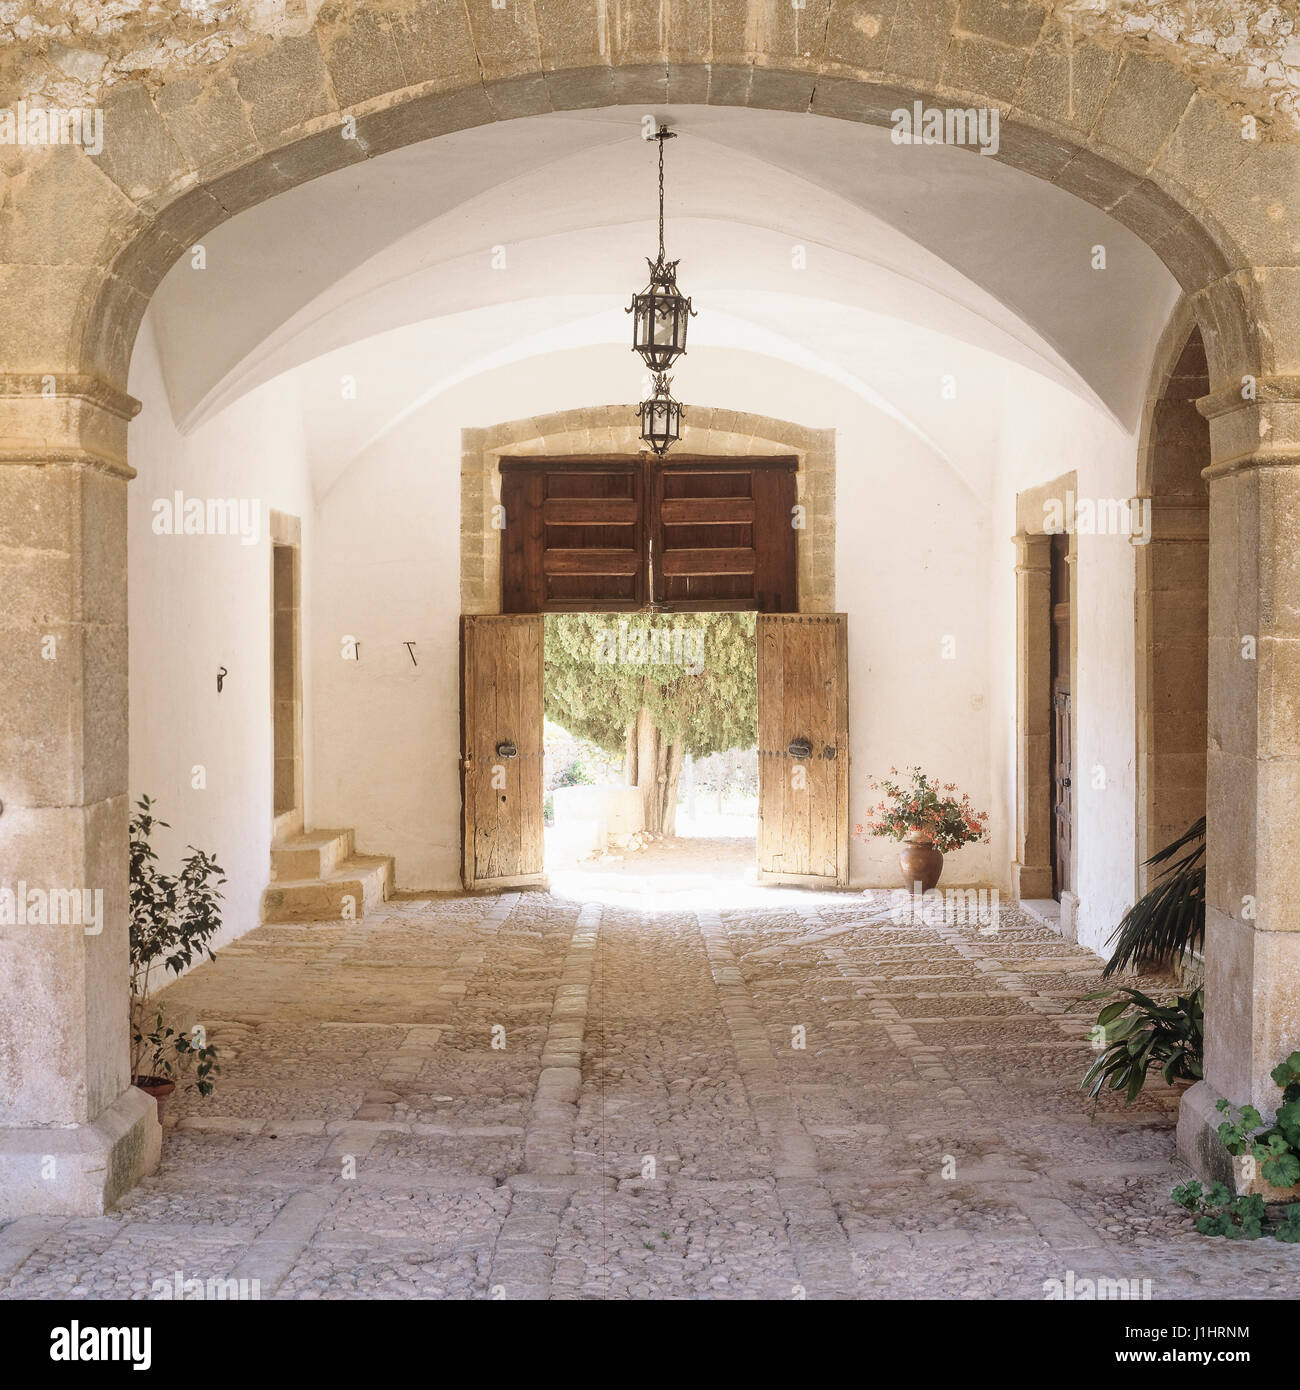 Rustic entry way. Stock Photo